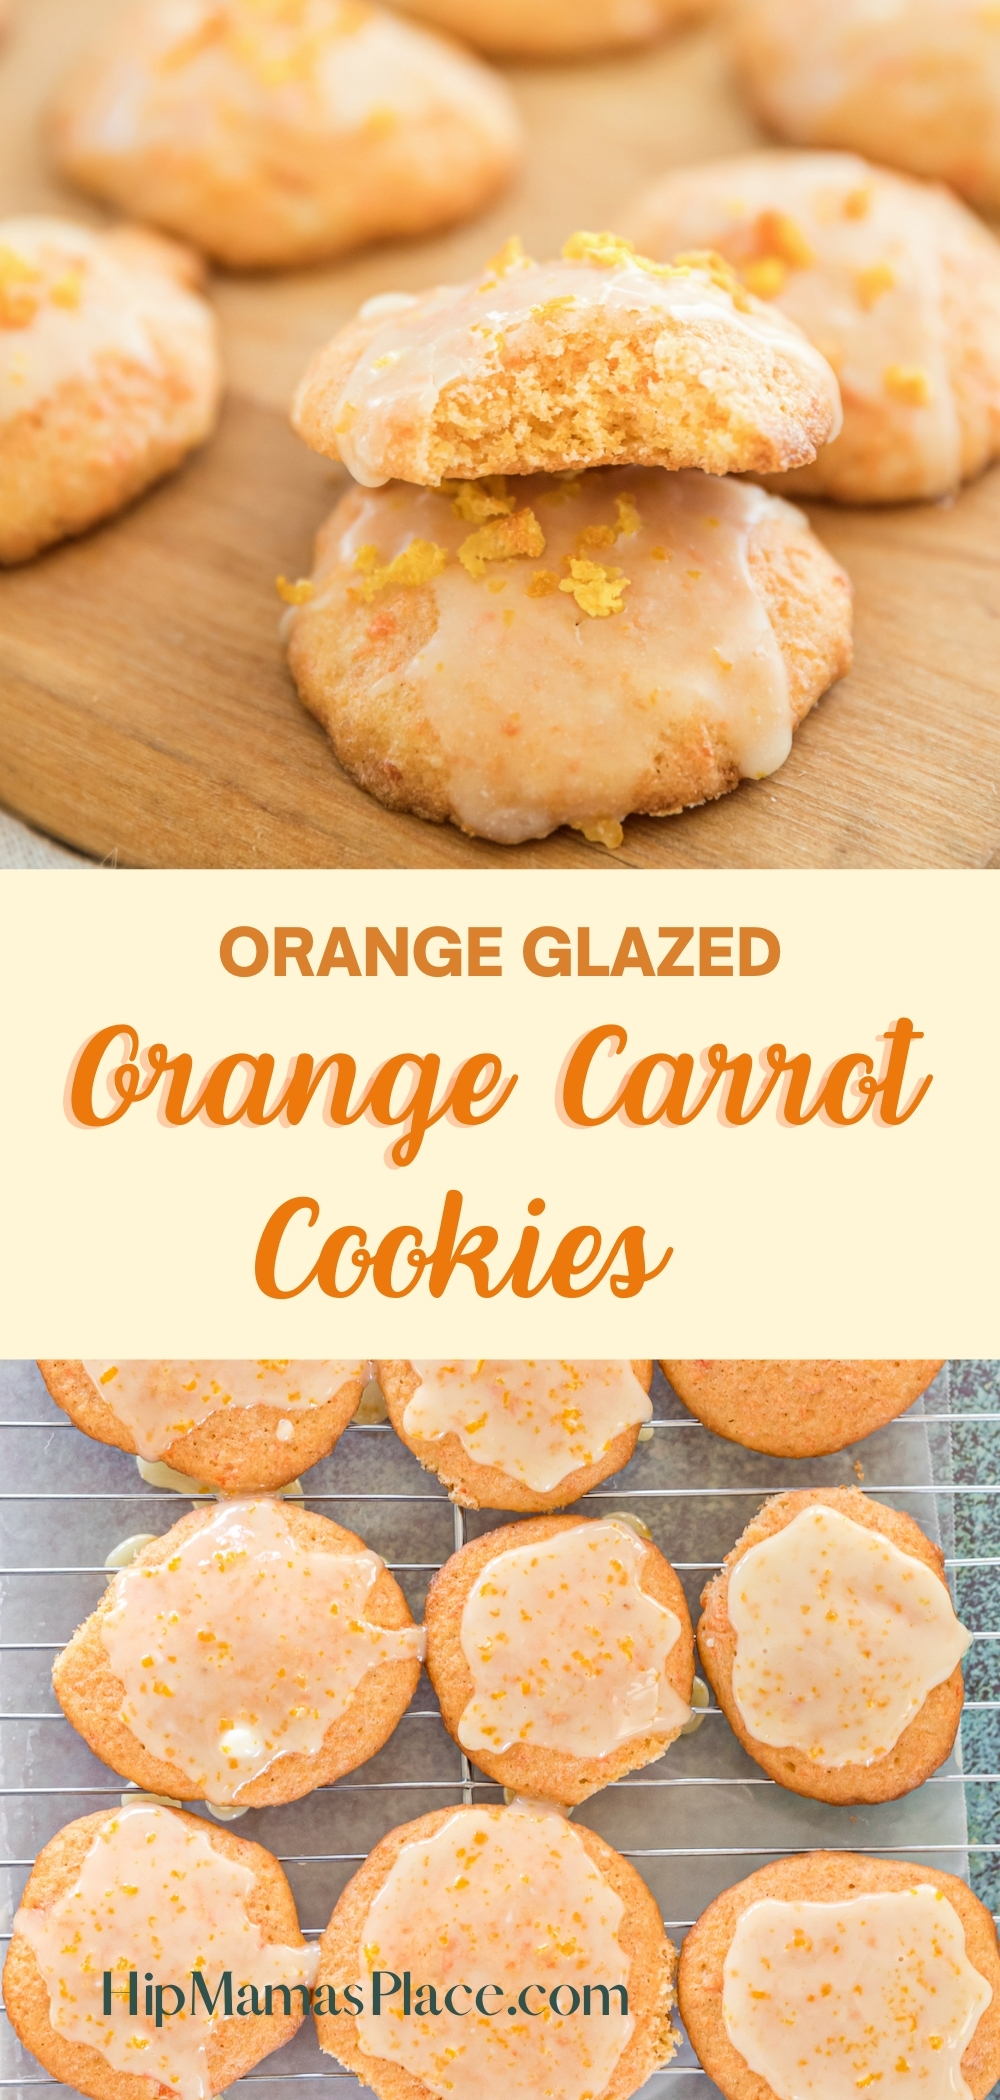 Easy and delicious orange carrot cookies are made with mashed carrots and then glazed with a delicious orange icing. Perfect as a springtime dessert or breakfast treat!